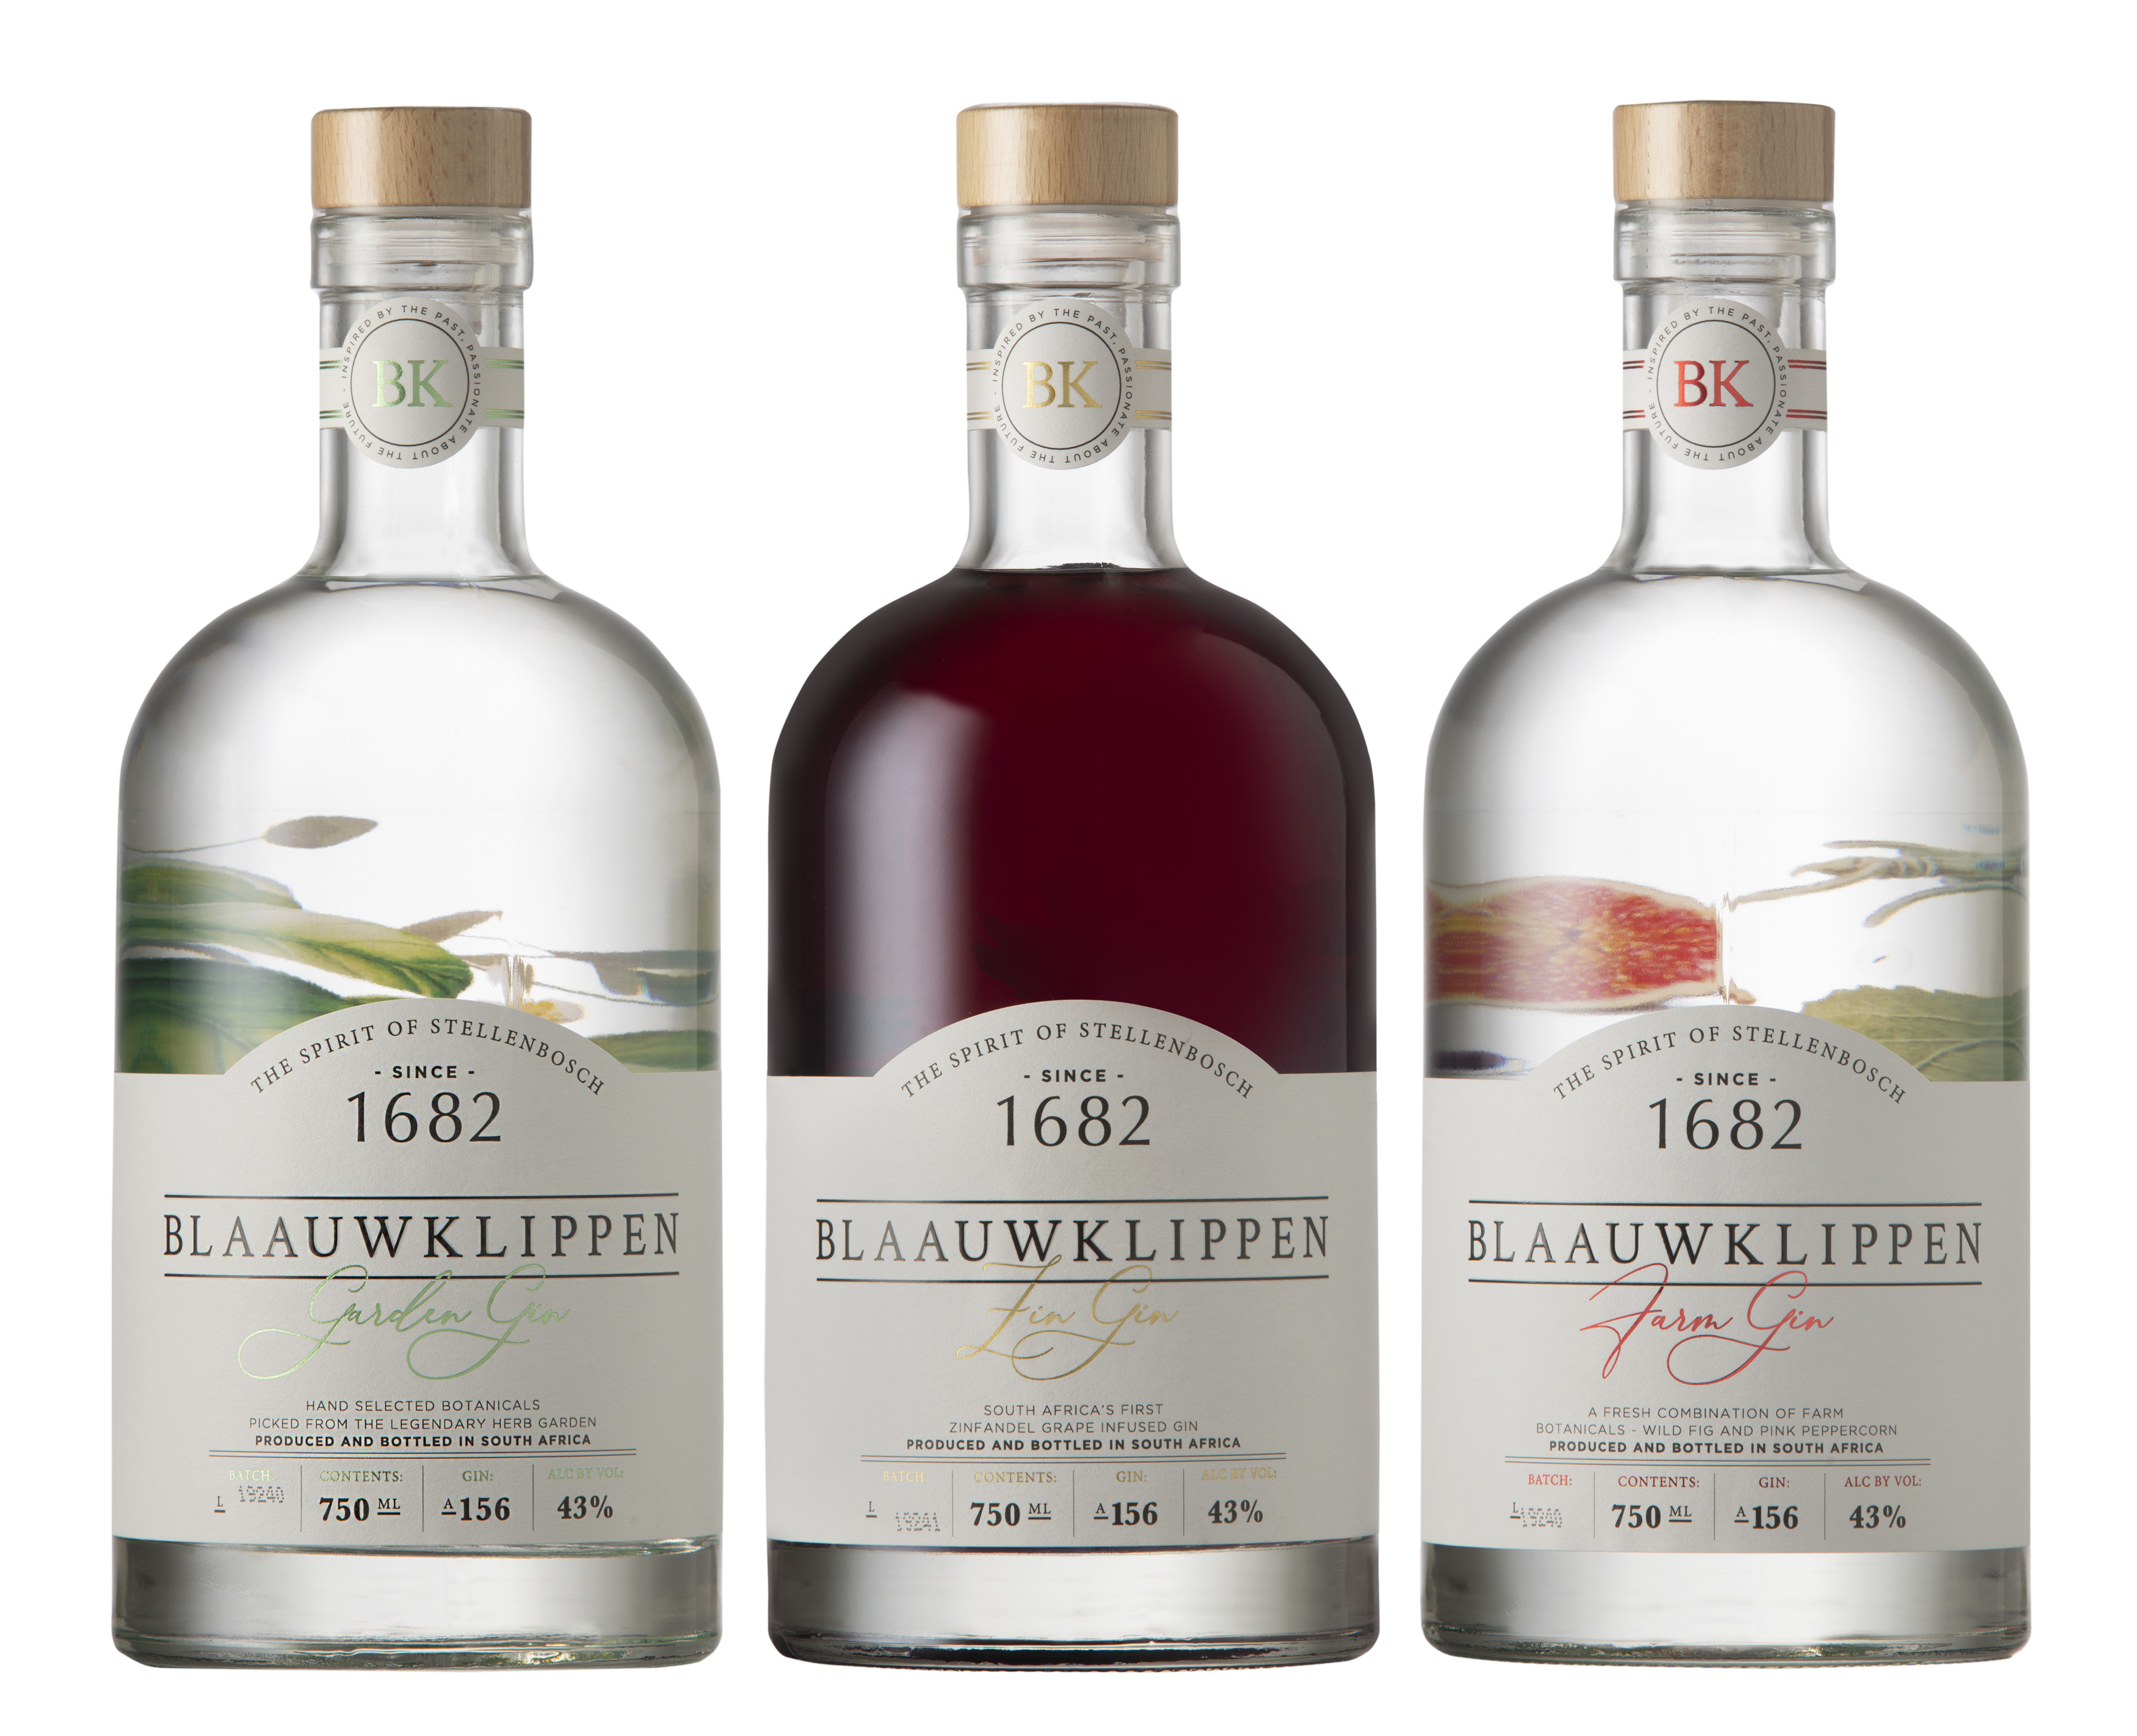 Blaauwklippen Brings Signature Zinfandel Wine into New Gin Range photo